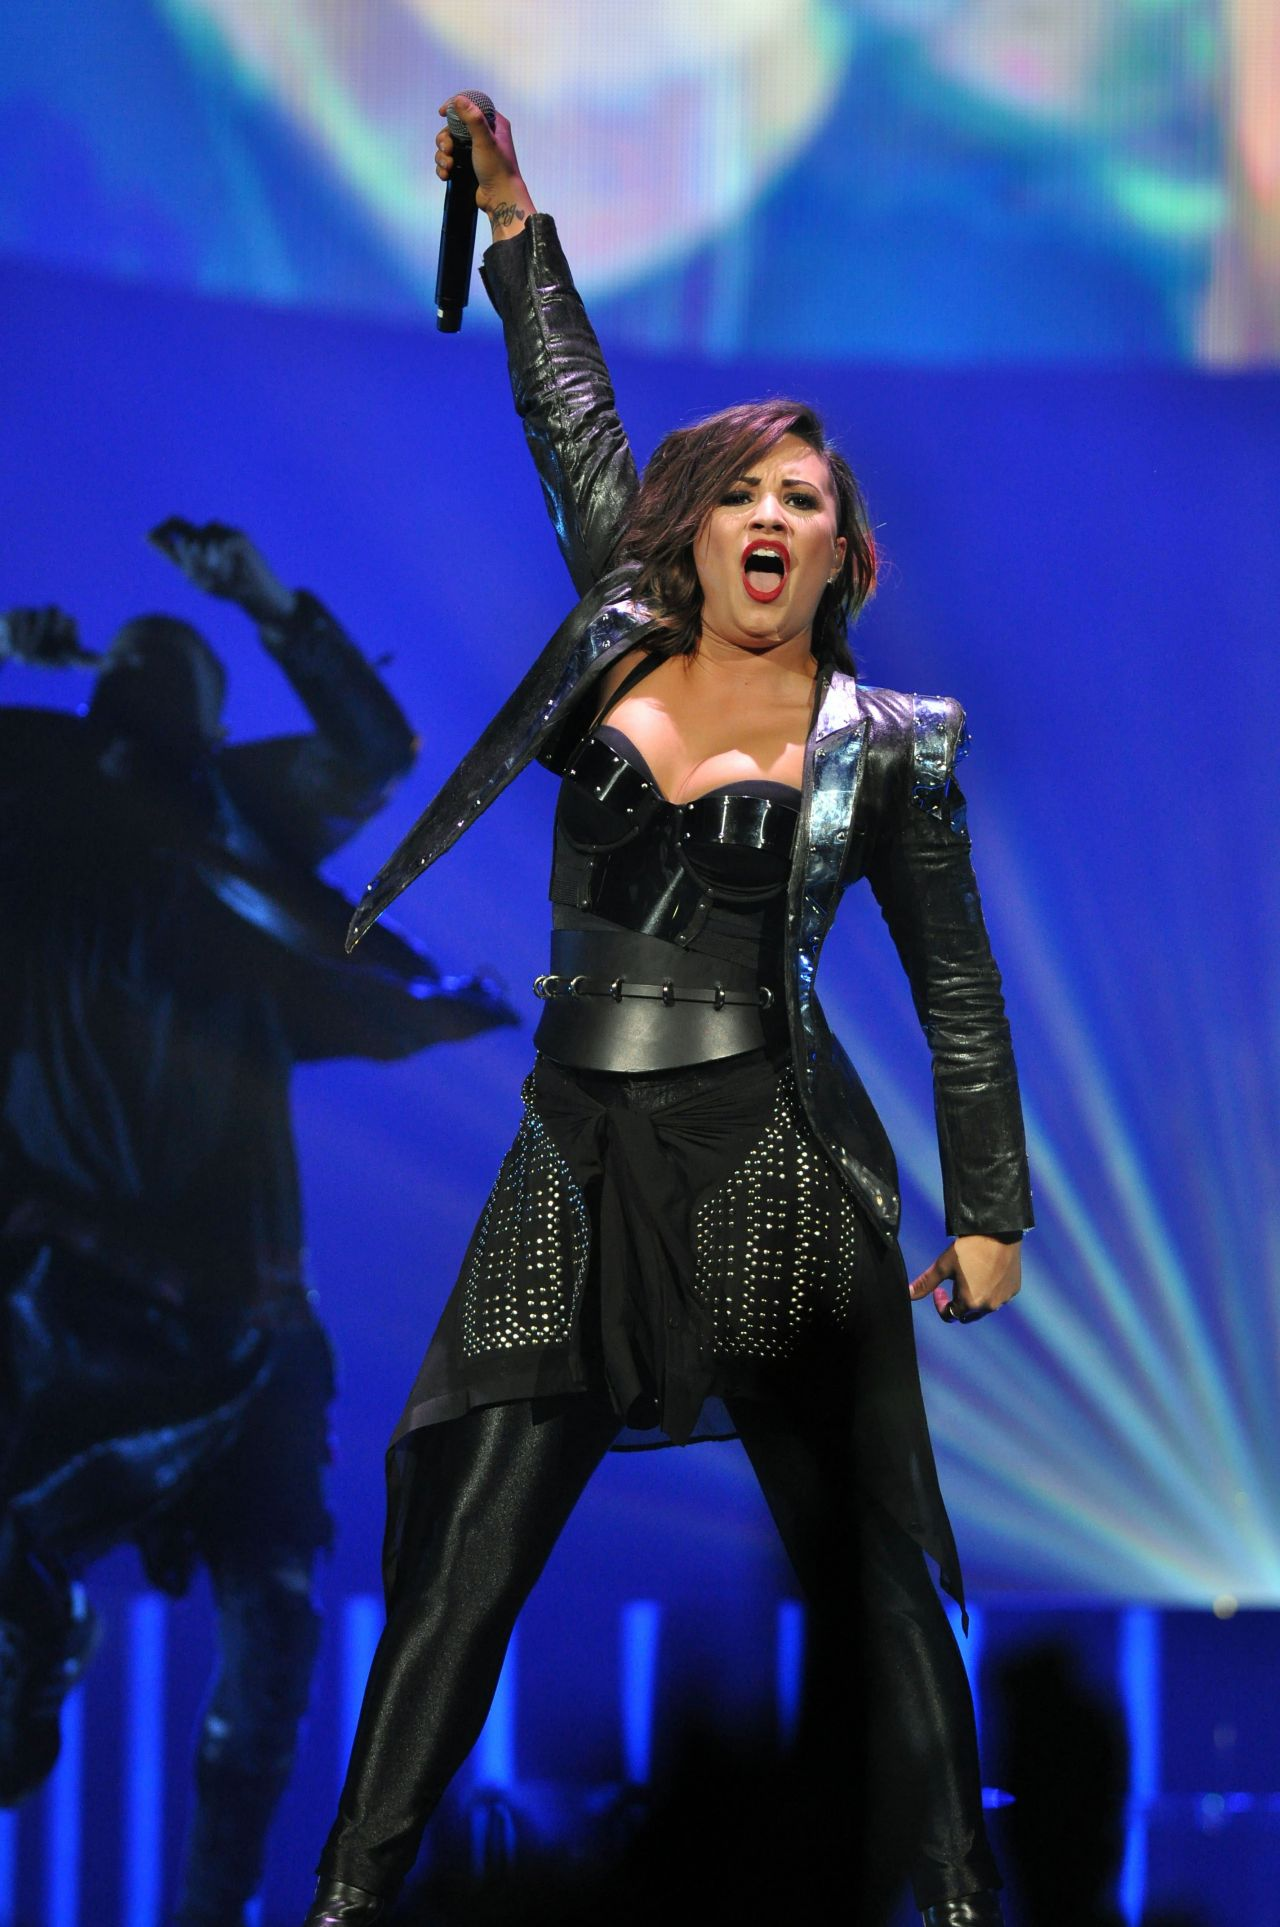 September 2014 Issue: Demi Lovato Performing In Raleigh (North Carolina